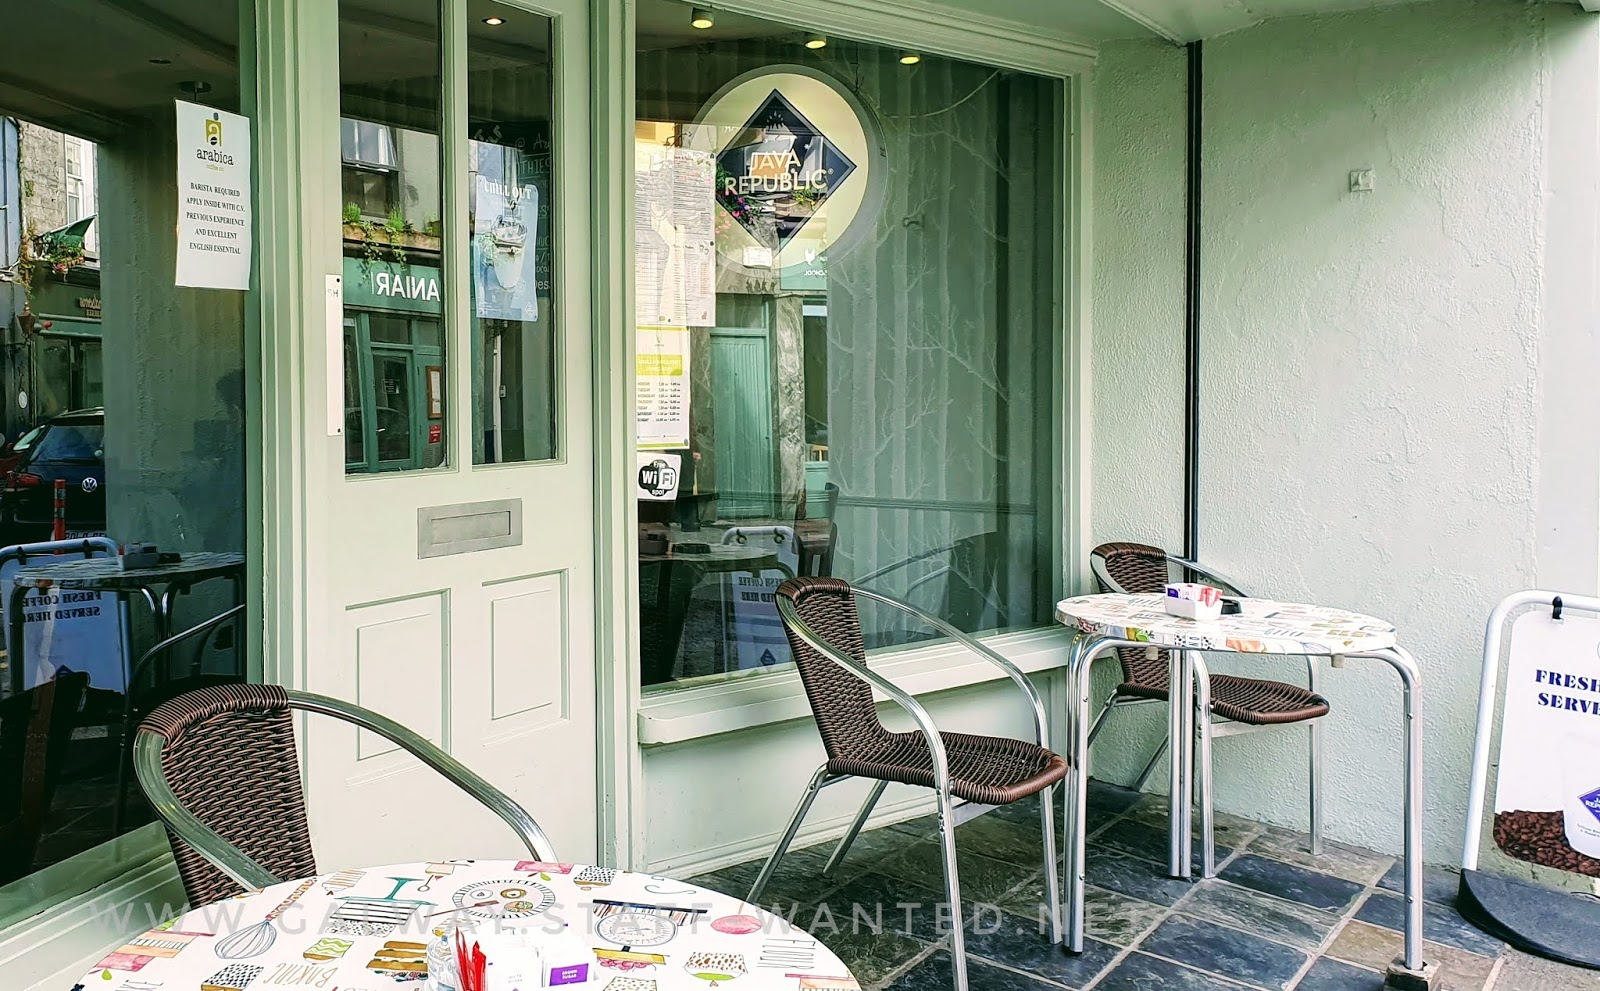 cafe outdoor seating area beside the front door - metal-legged round tables, metal-legged chairs with imitation cane wicker-work style seats